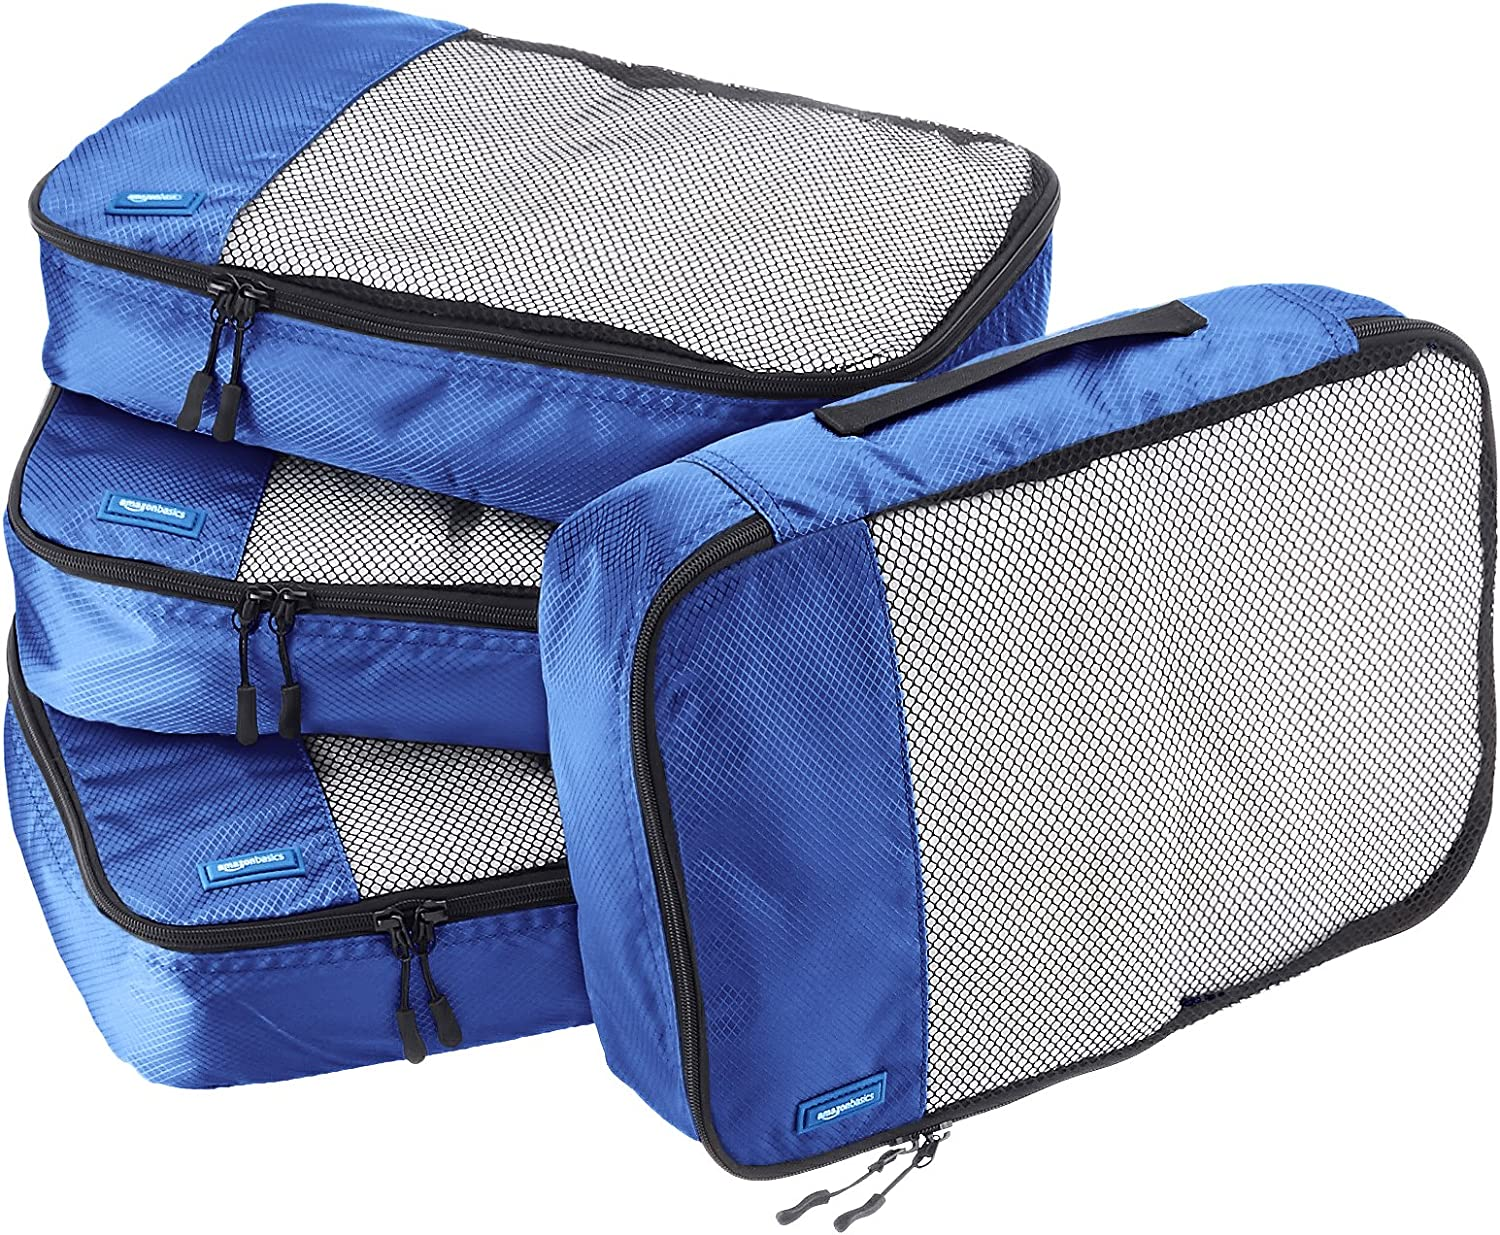 The AmazonBasics 4 Piece Packing Travel Organizer Cubes Set travel product recommended by Kalev Rudolph on Lifney.